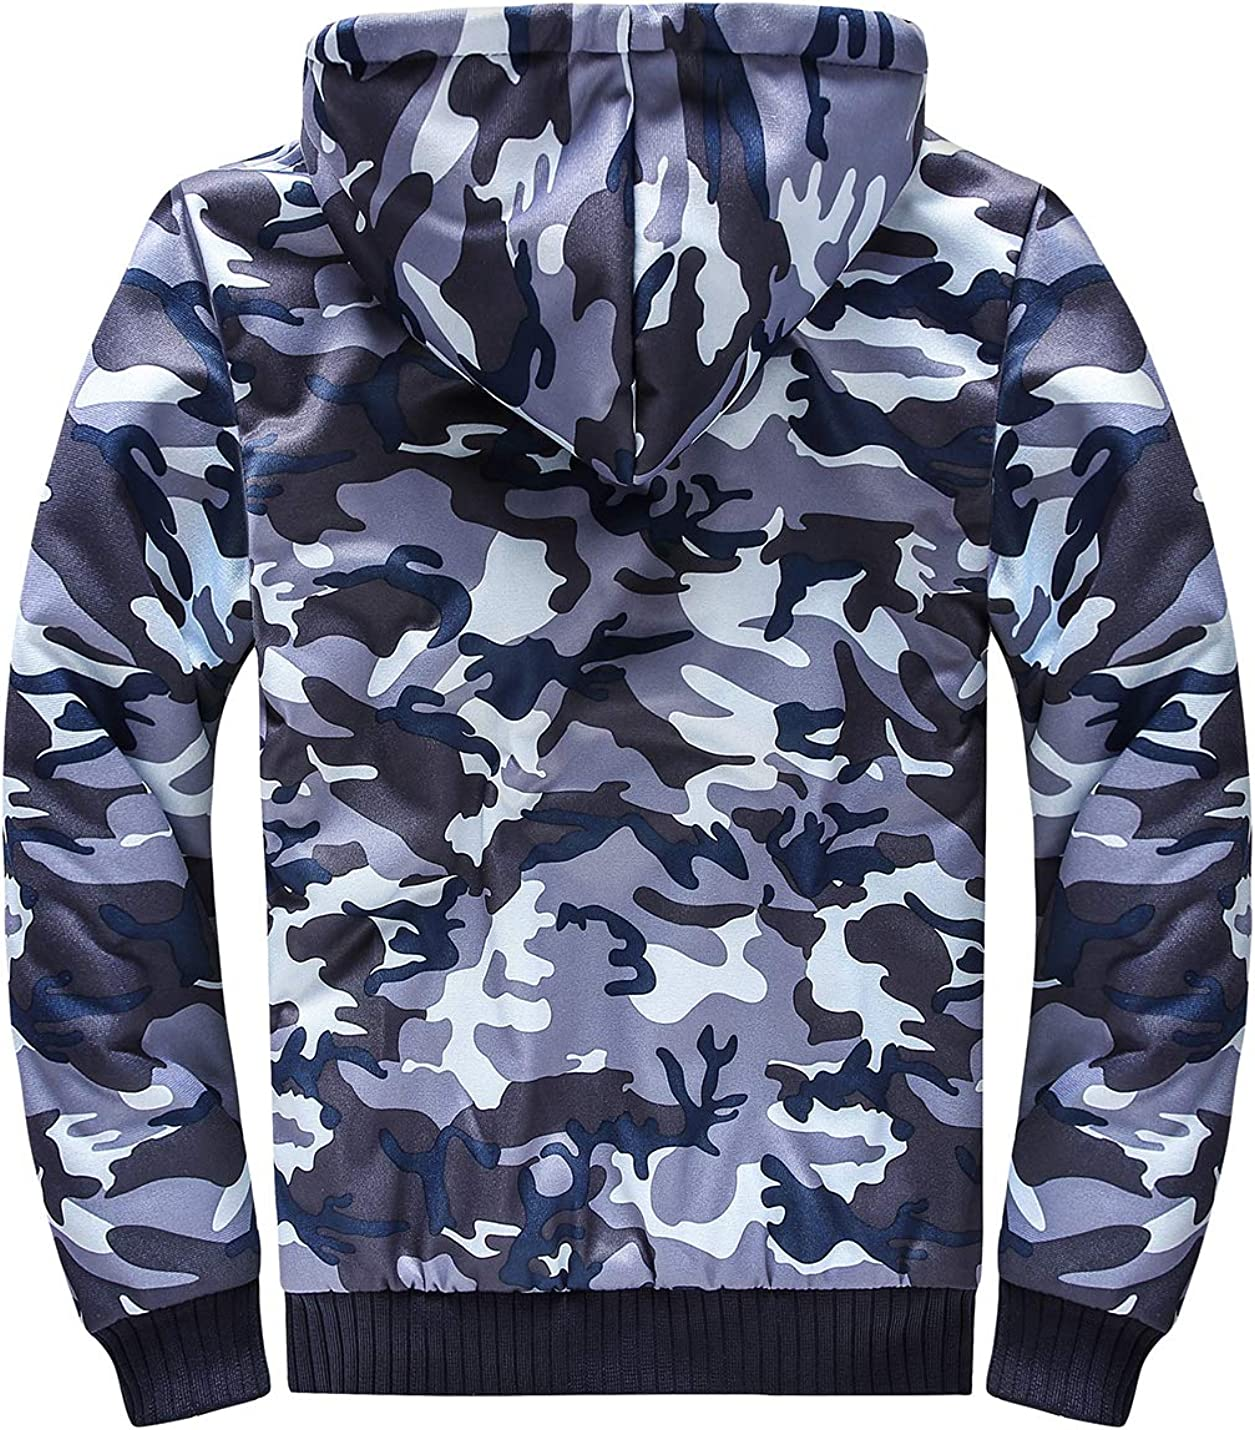 Uaneo Mens Fleece Lined Camouflage Winter Long Sleeve Zip Up Hooded Jackets(Blue-S)